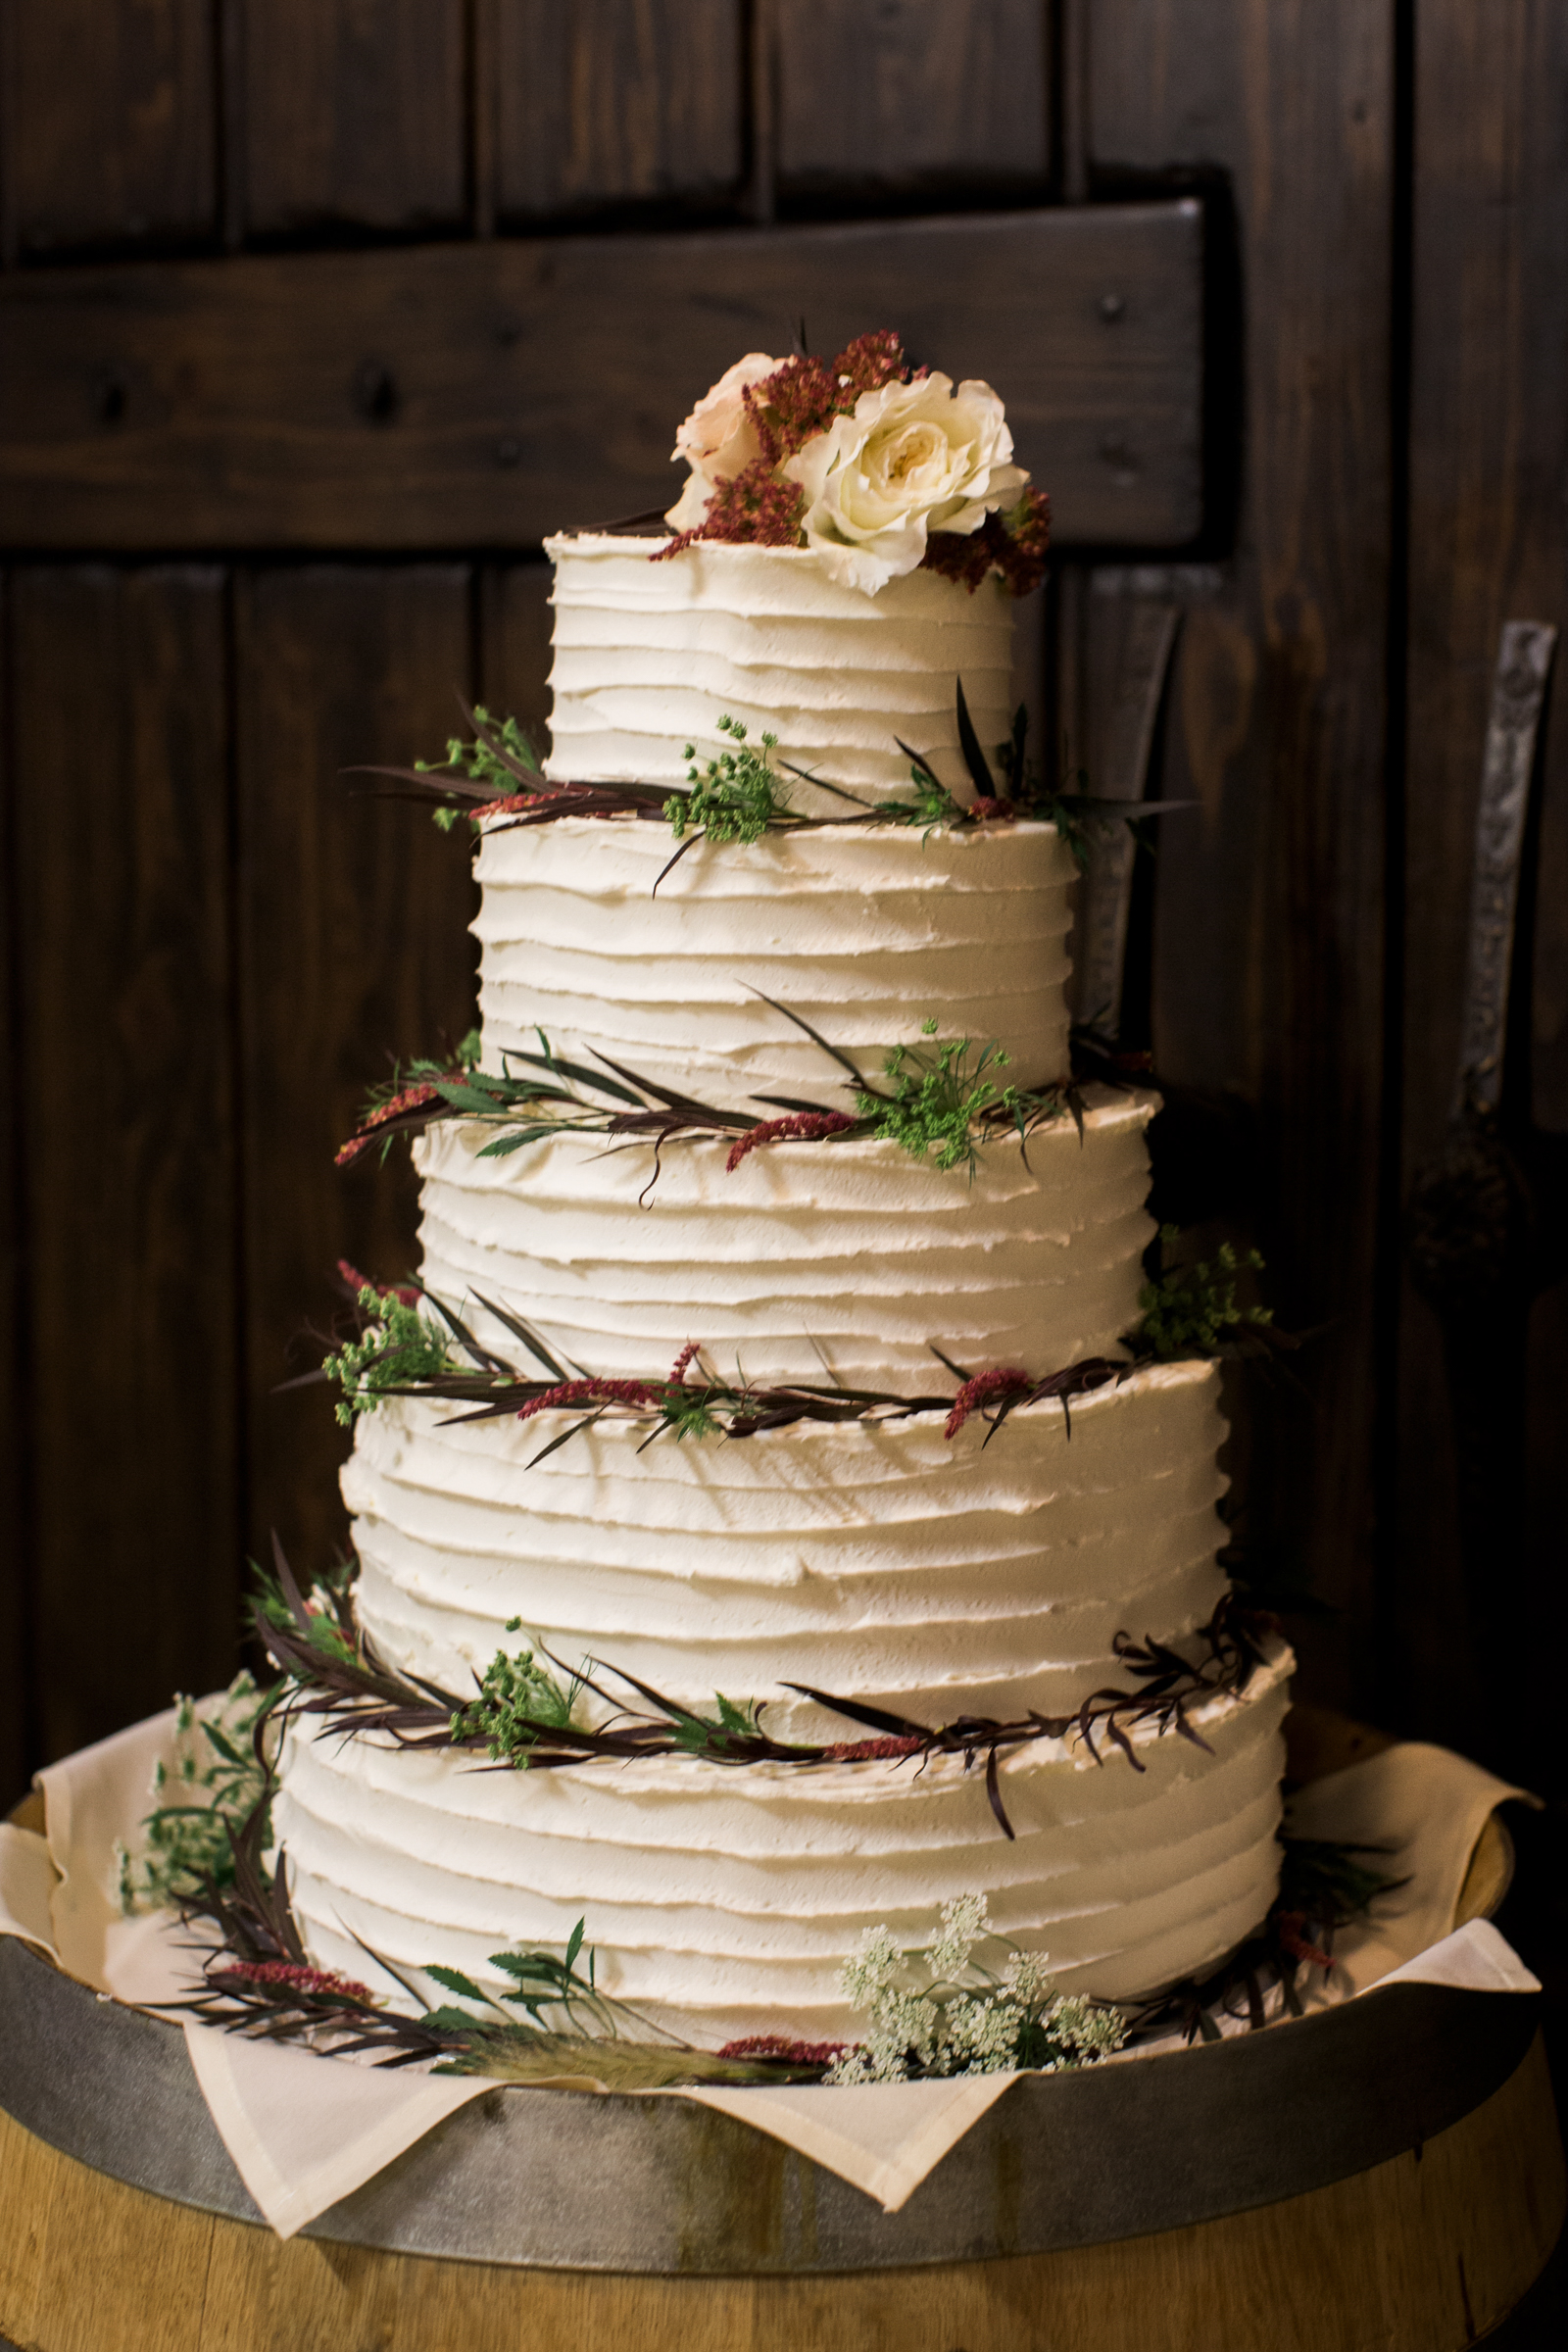 5-tier buttercream cake with greenery and roses - photo by Stephanie Cristalli Photography